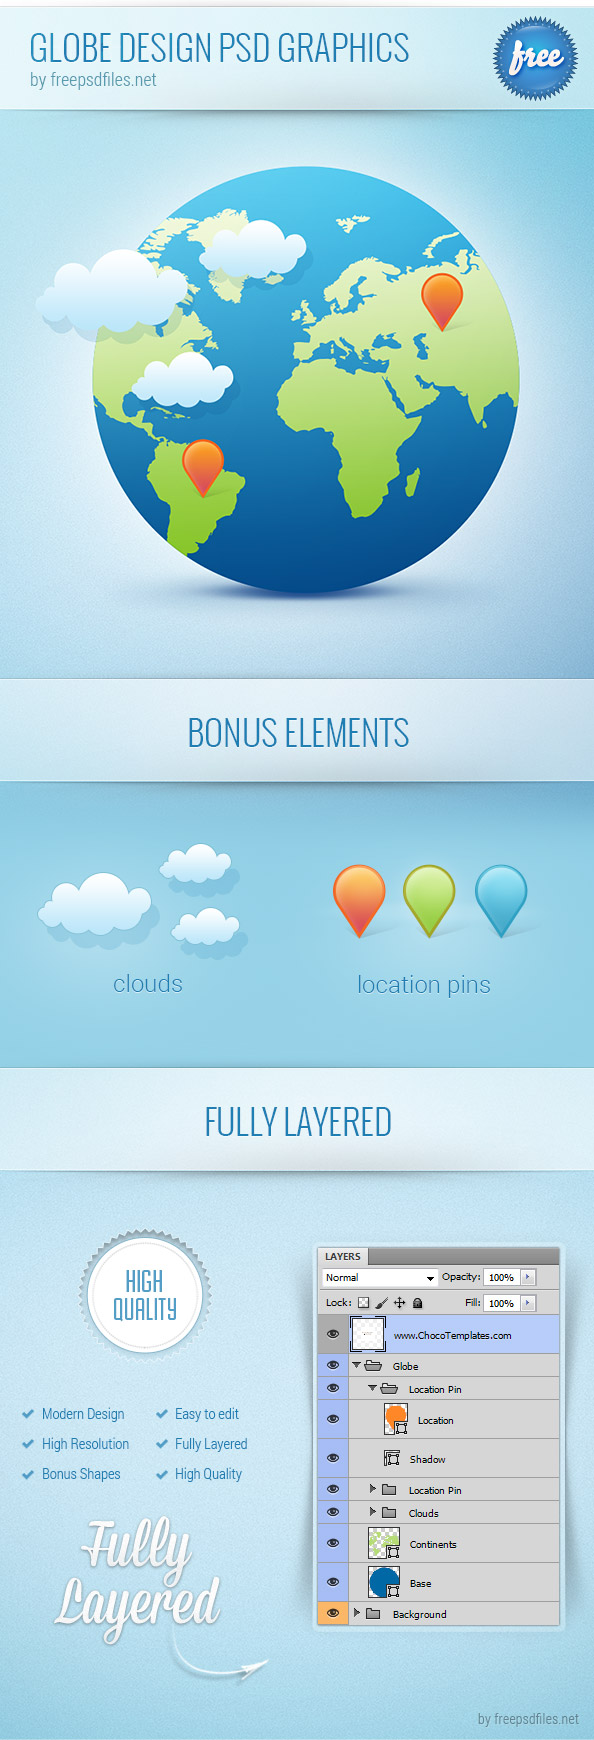 Globe Design PSD Graphics Preview